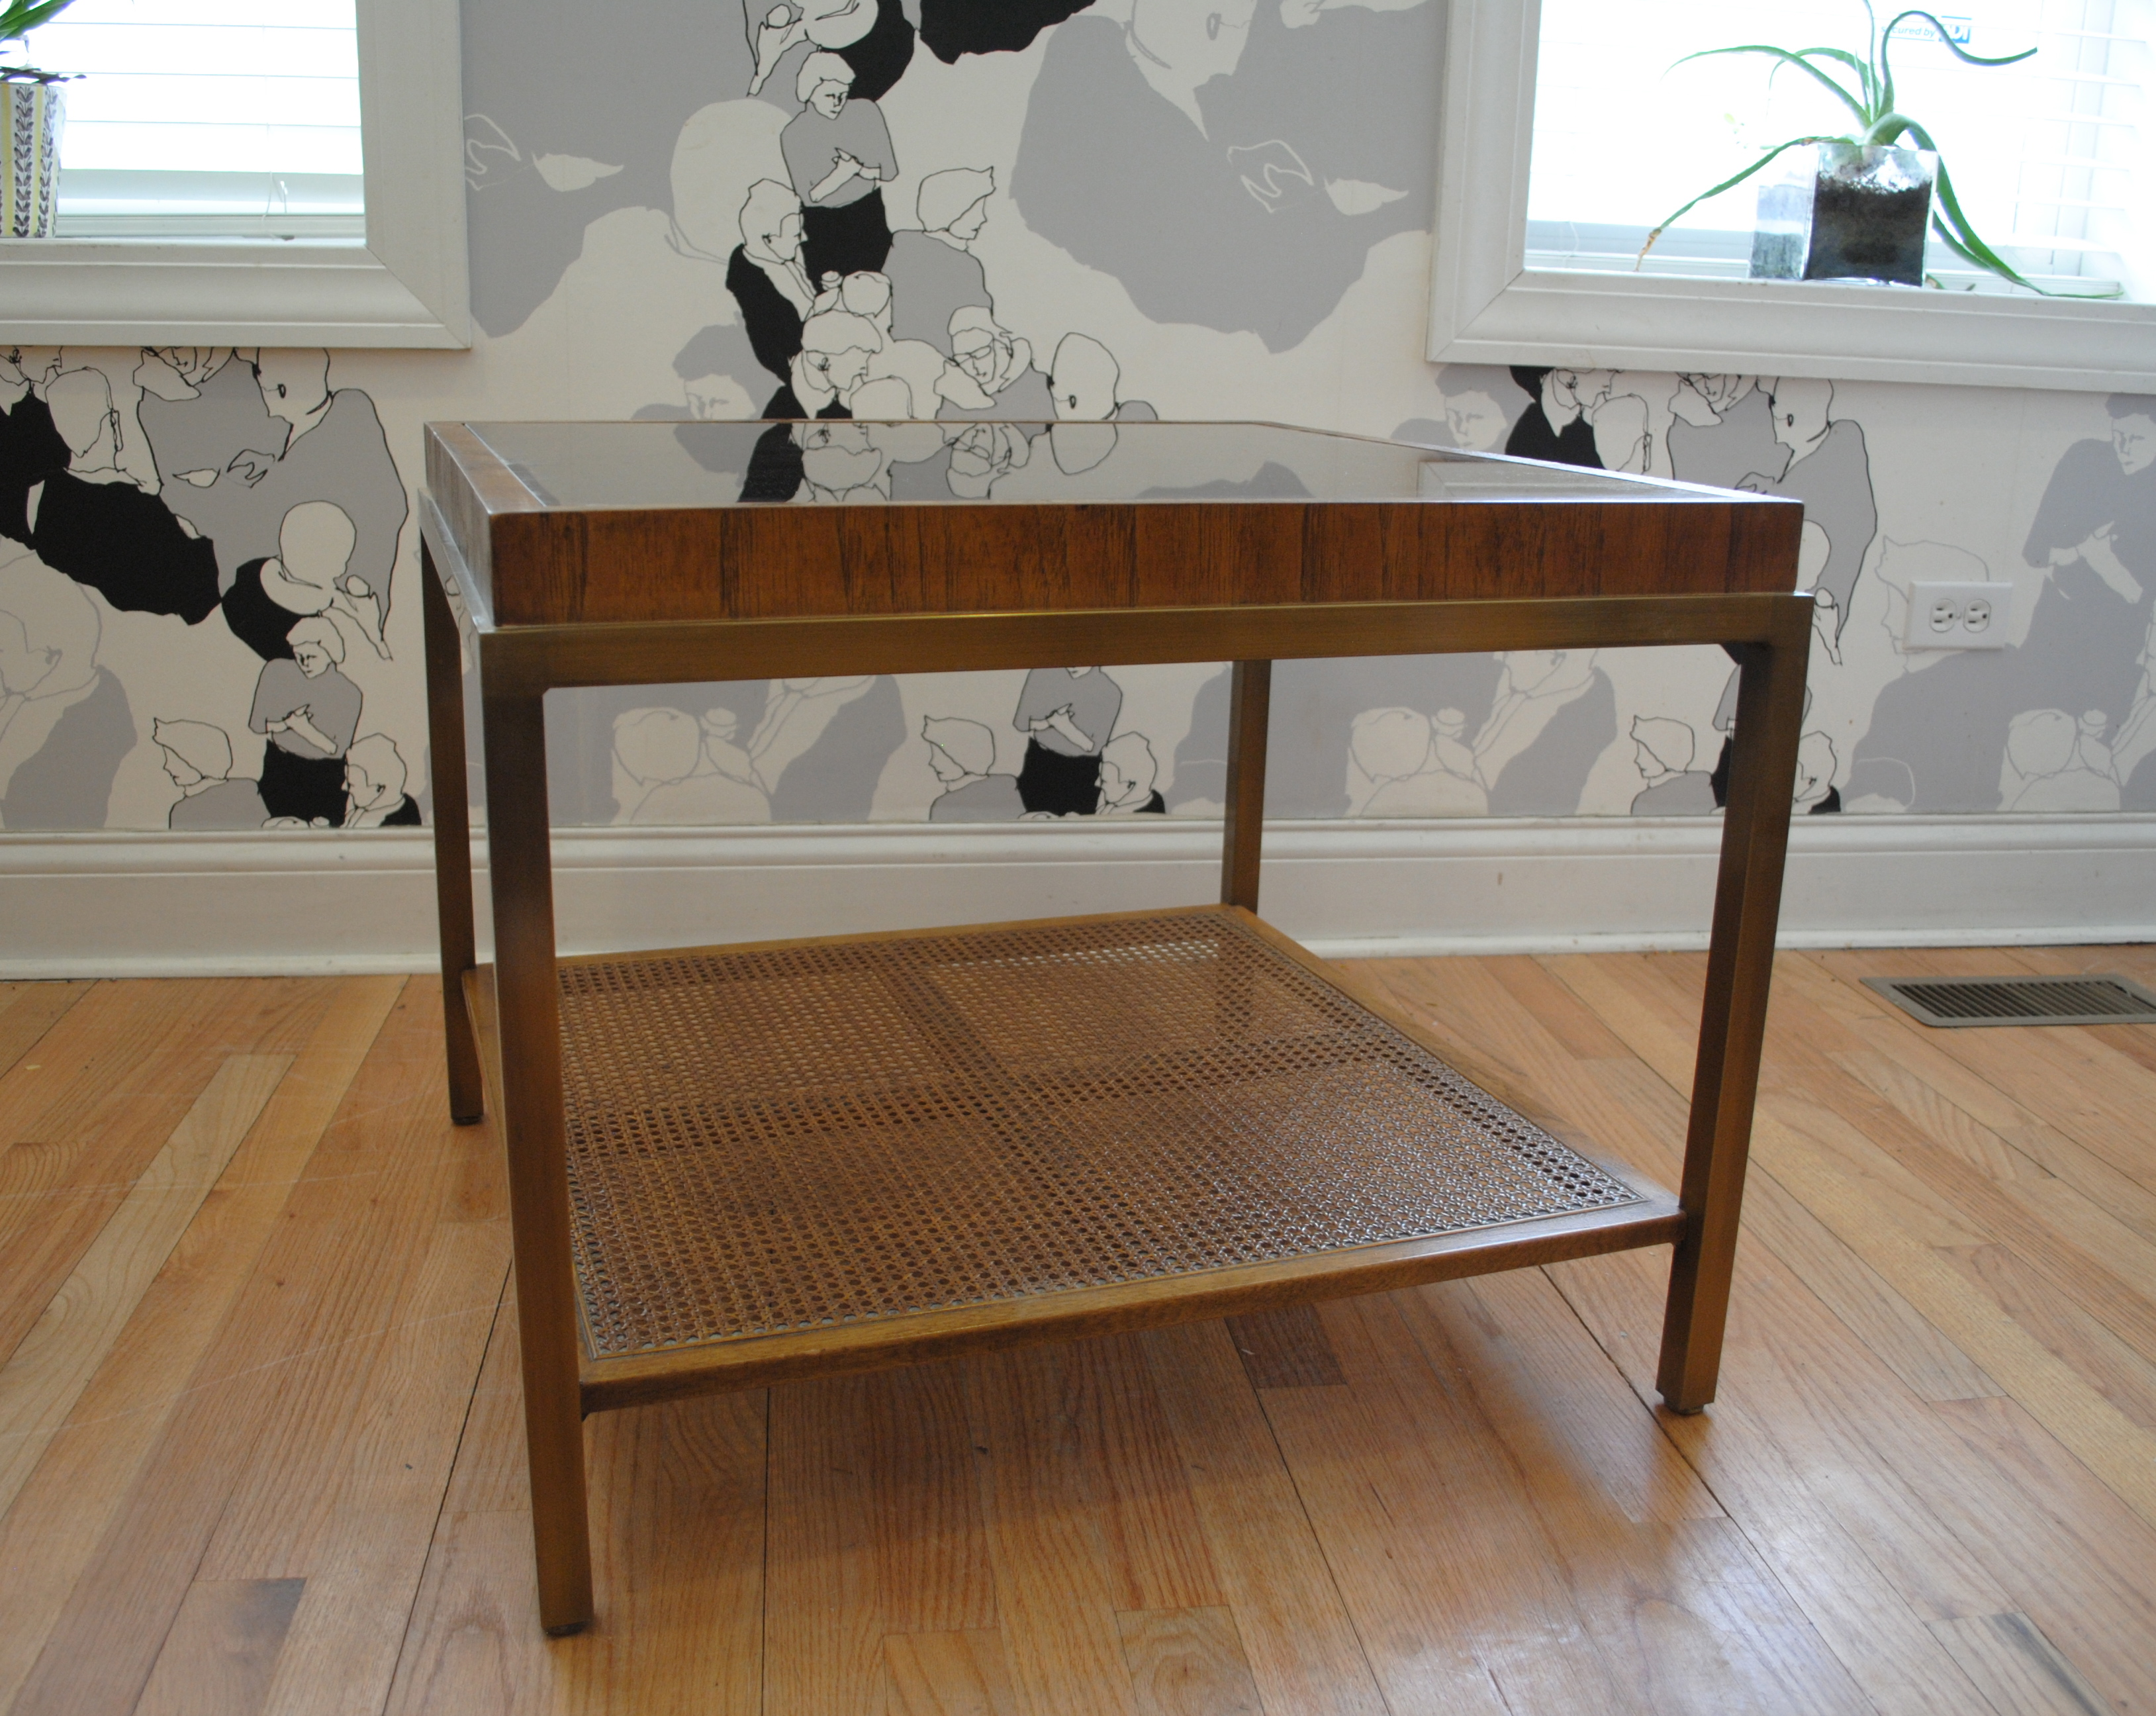 Wood and glass end table - Vintage Brass And Wood End Table With Smoked Glass Top And Cane Lower Shelf By Drexel Dimensions Are 26 W X 26 L X 21 H Please Contact Me With Any